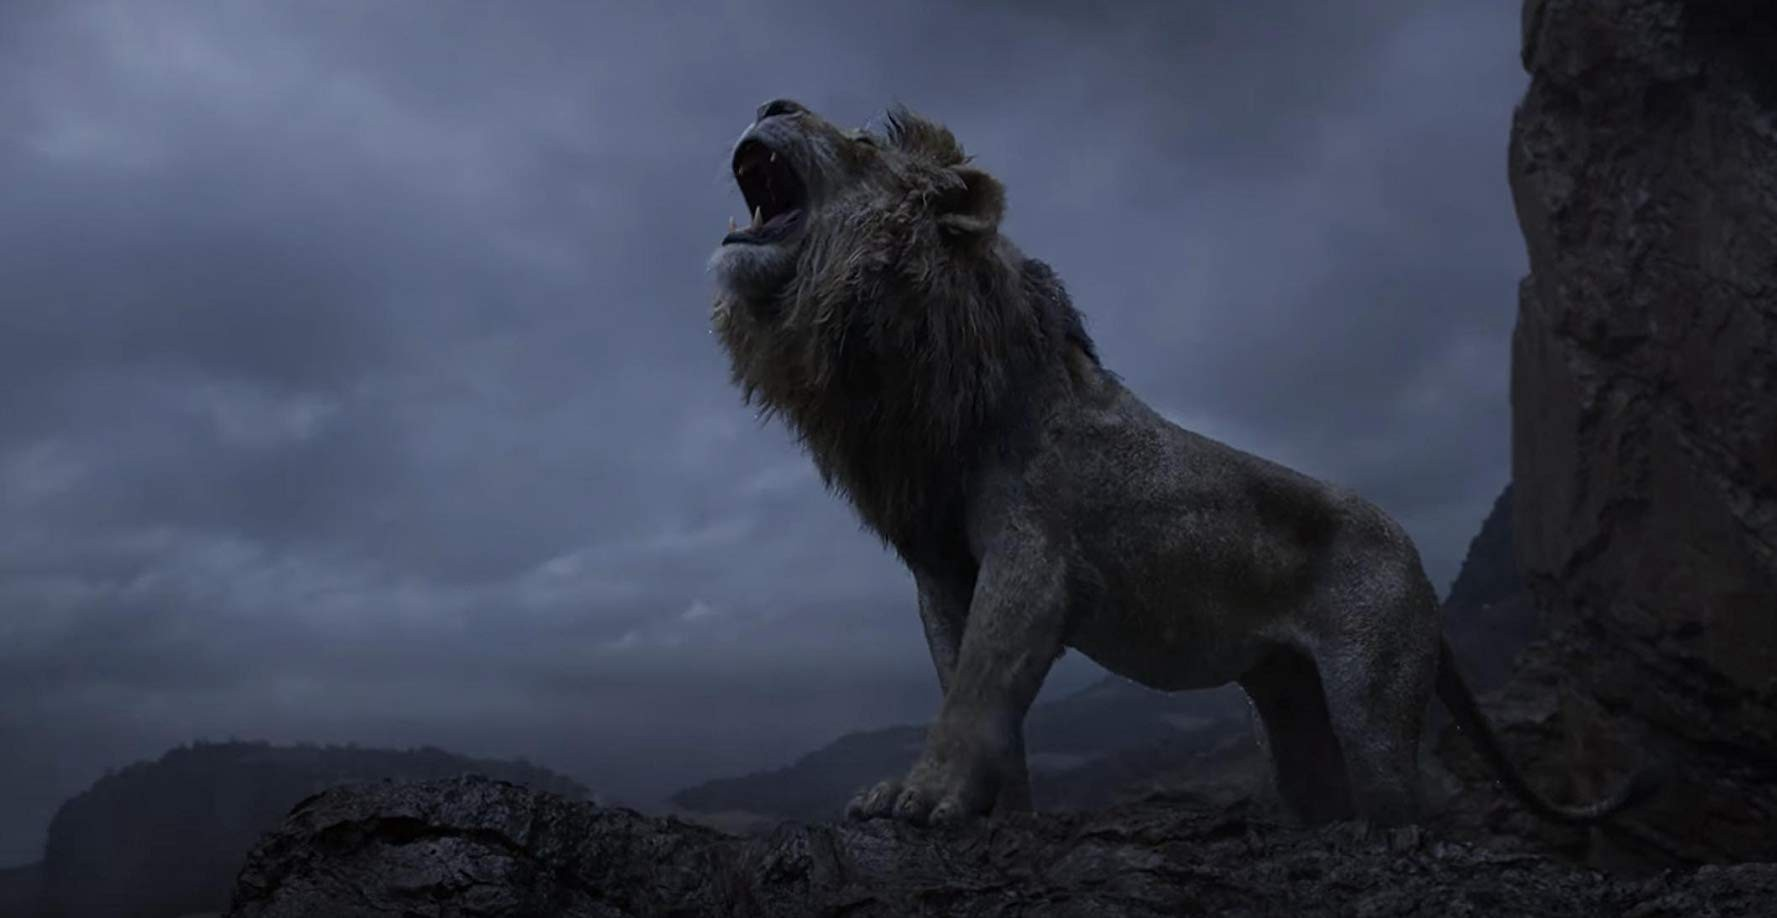 The Lion King Disney Movies 2019 By The Lion King 2019 Film Medium